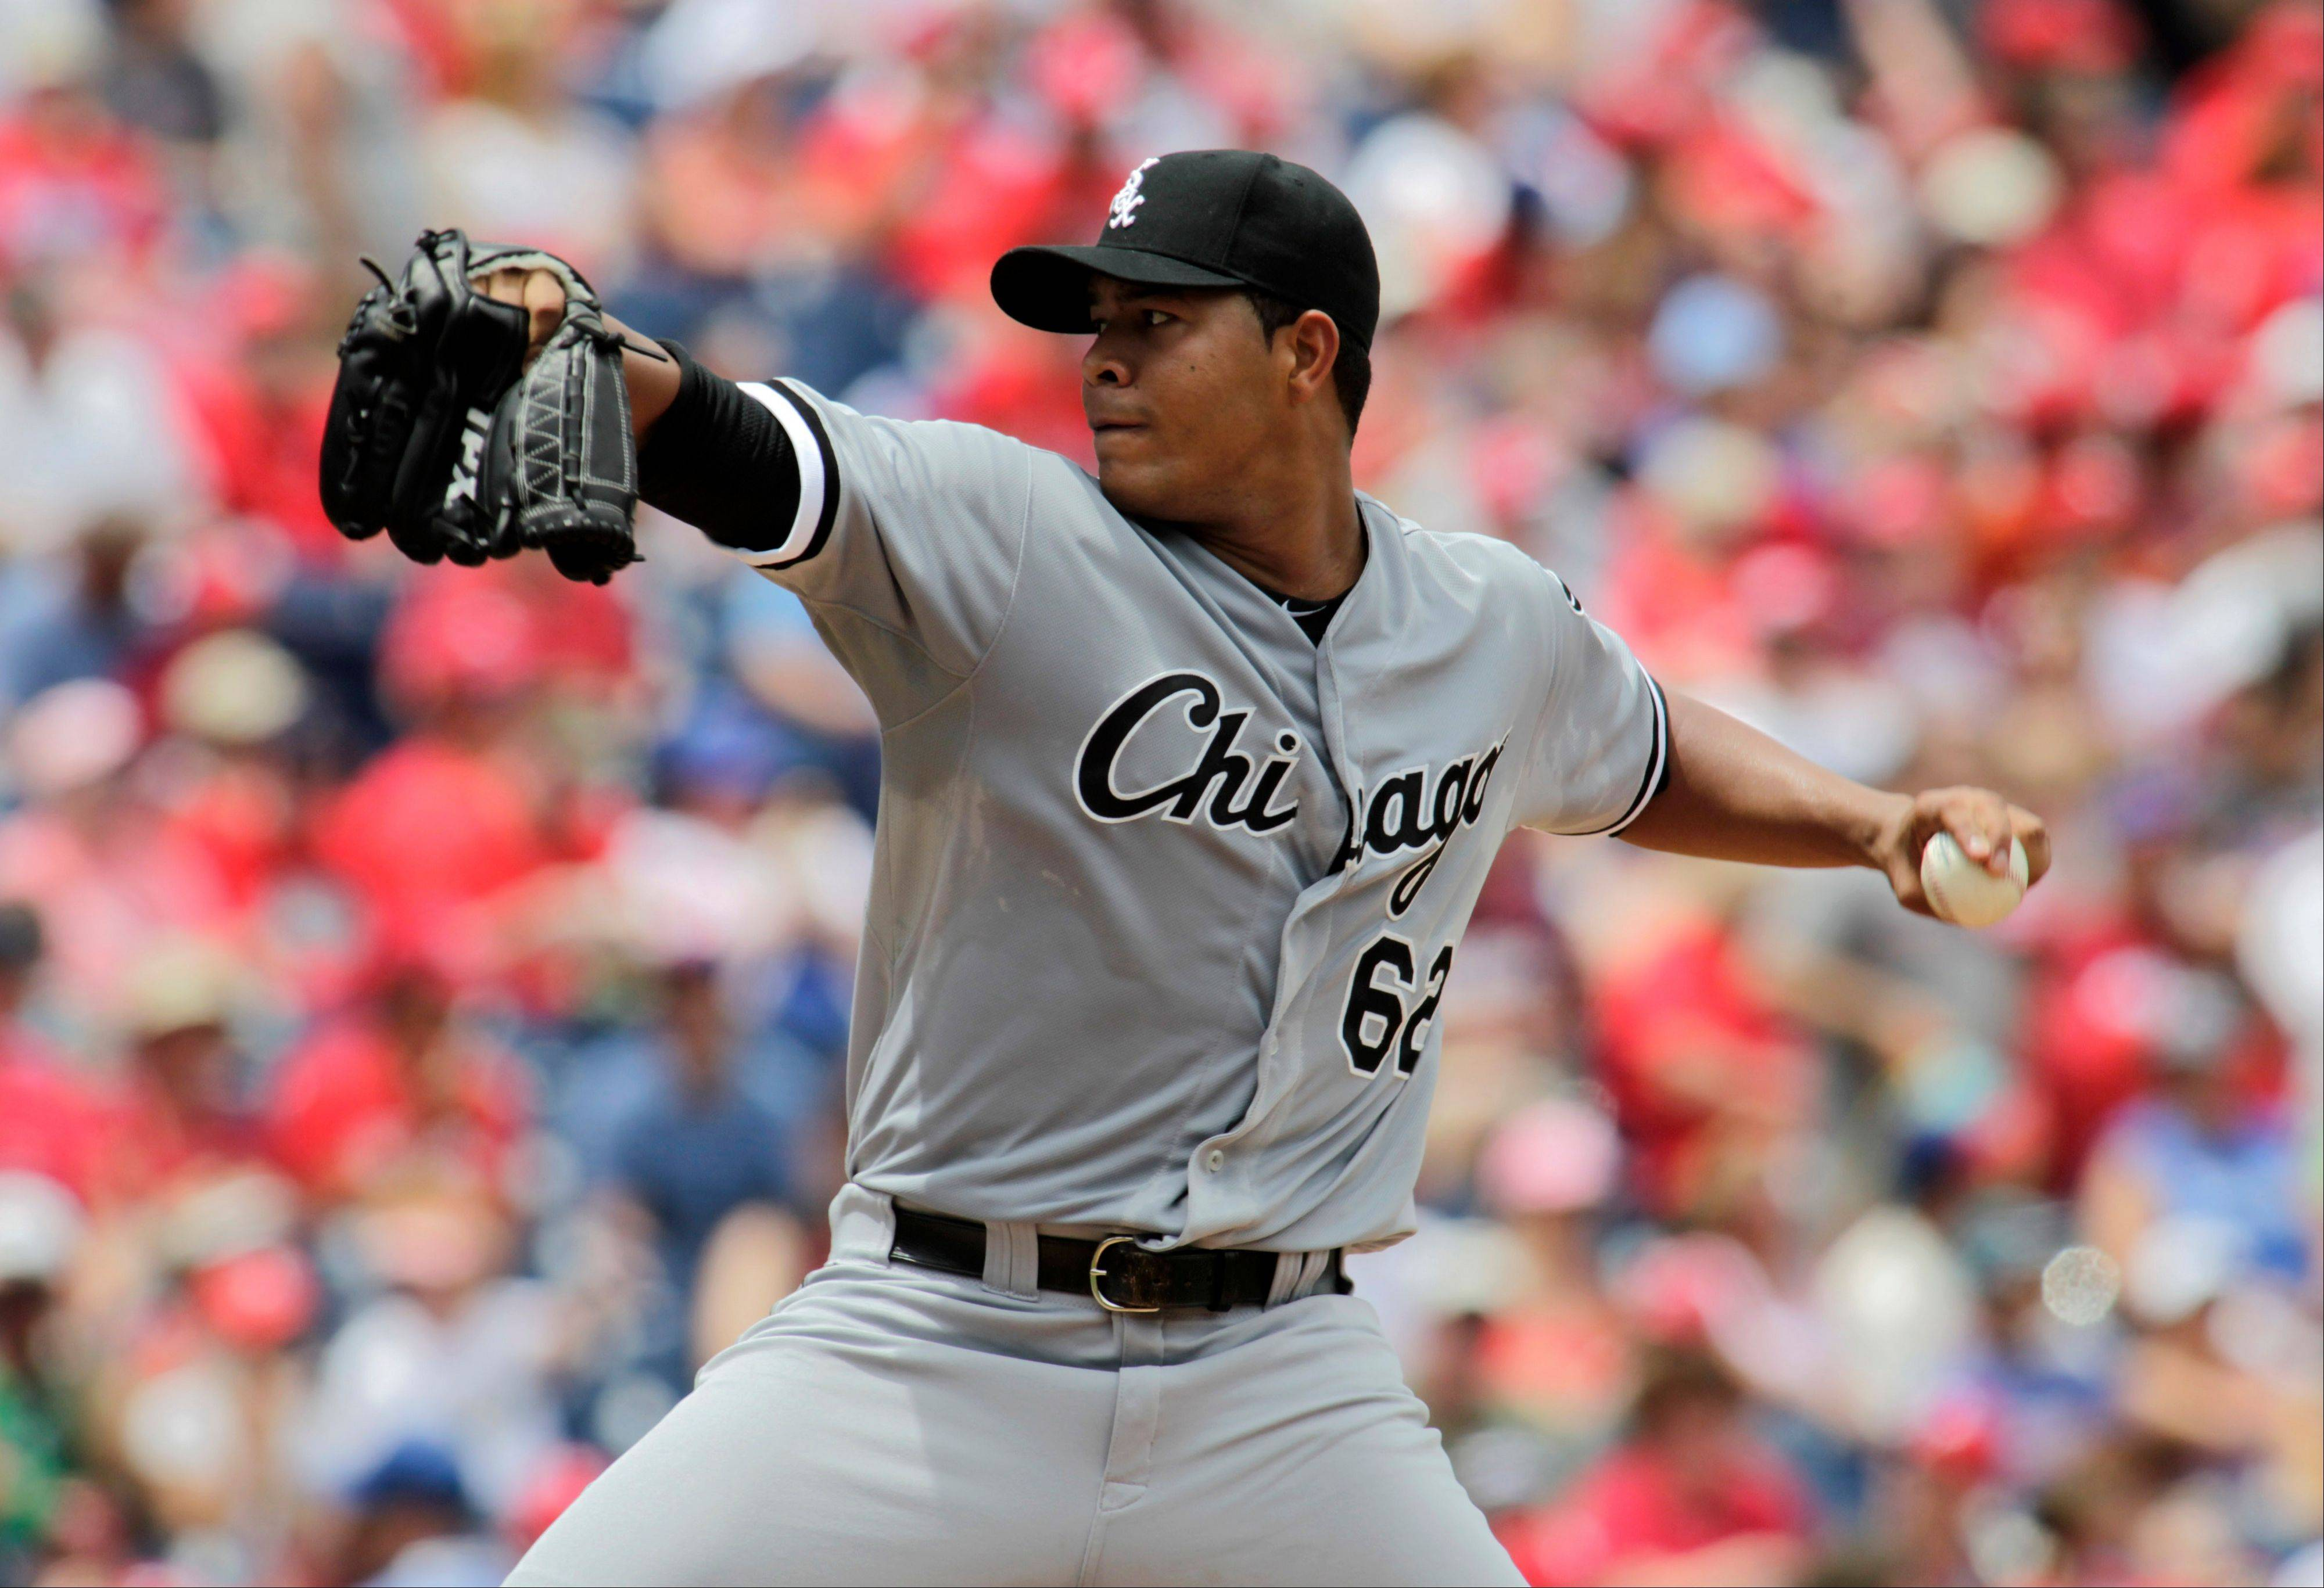 White Sox starting pitcher Jose Quintana throws against the Philadelphia Phillies in Sunday's first inning in Philly.